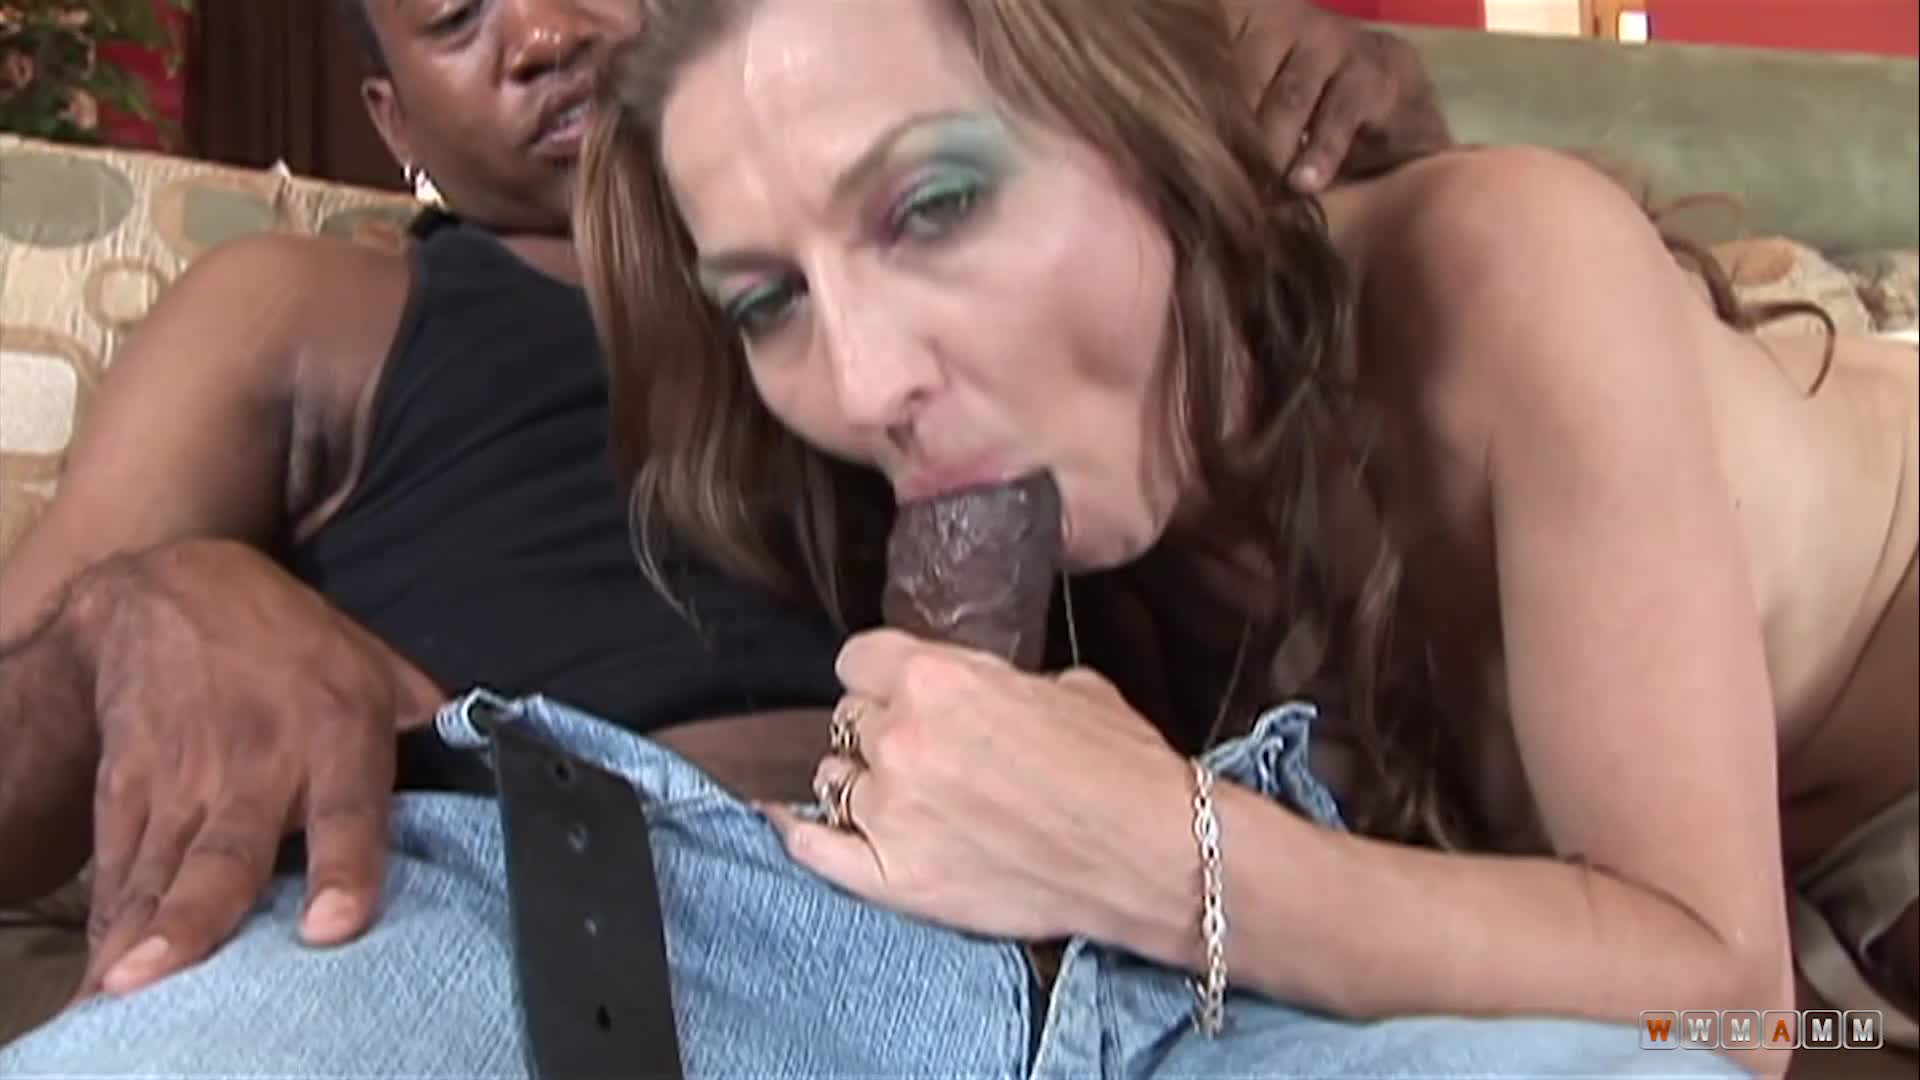 Slutty Milf Offers Her Wet Pussy To Fuck A Big Black Cock